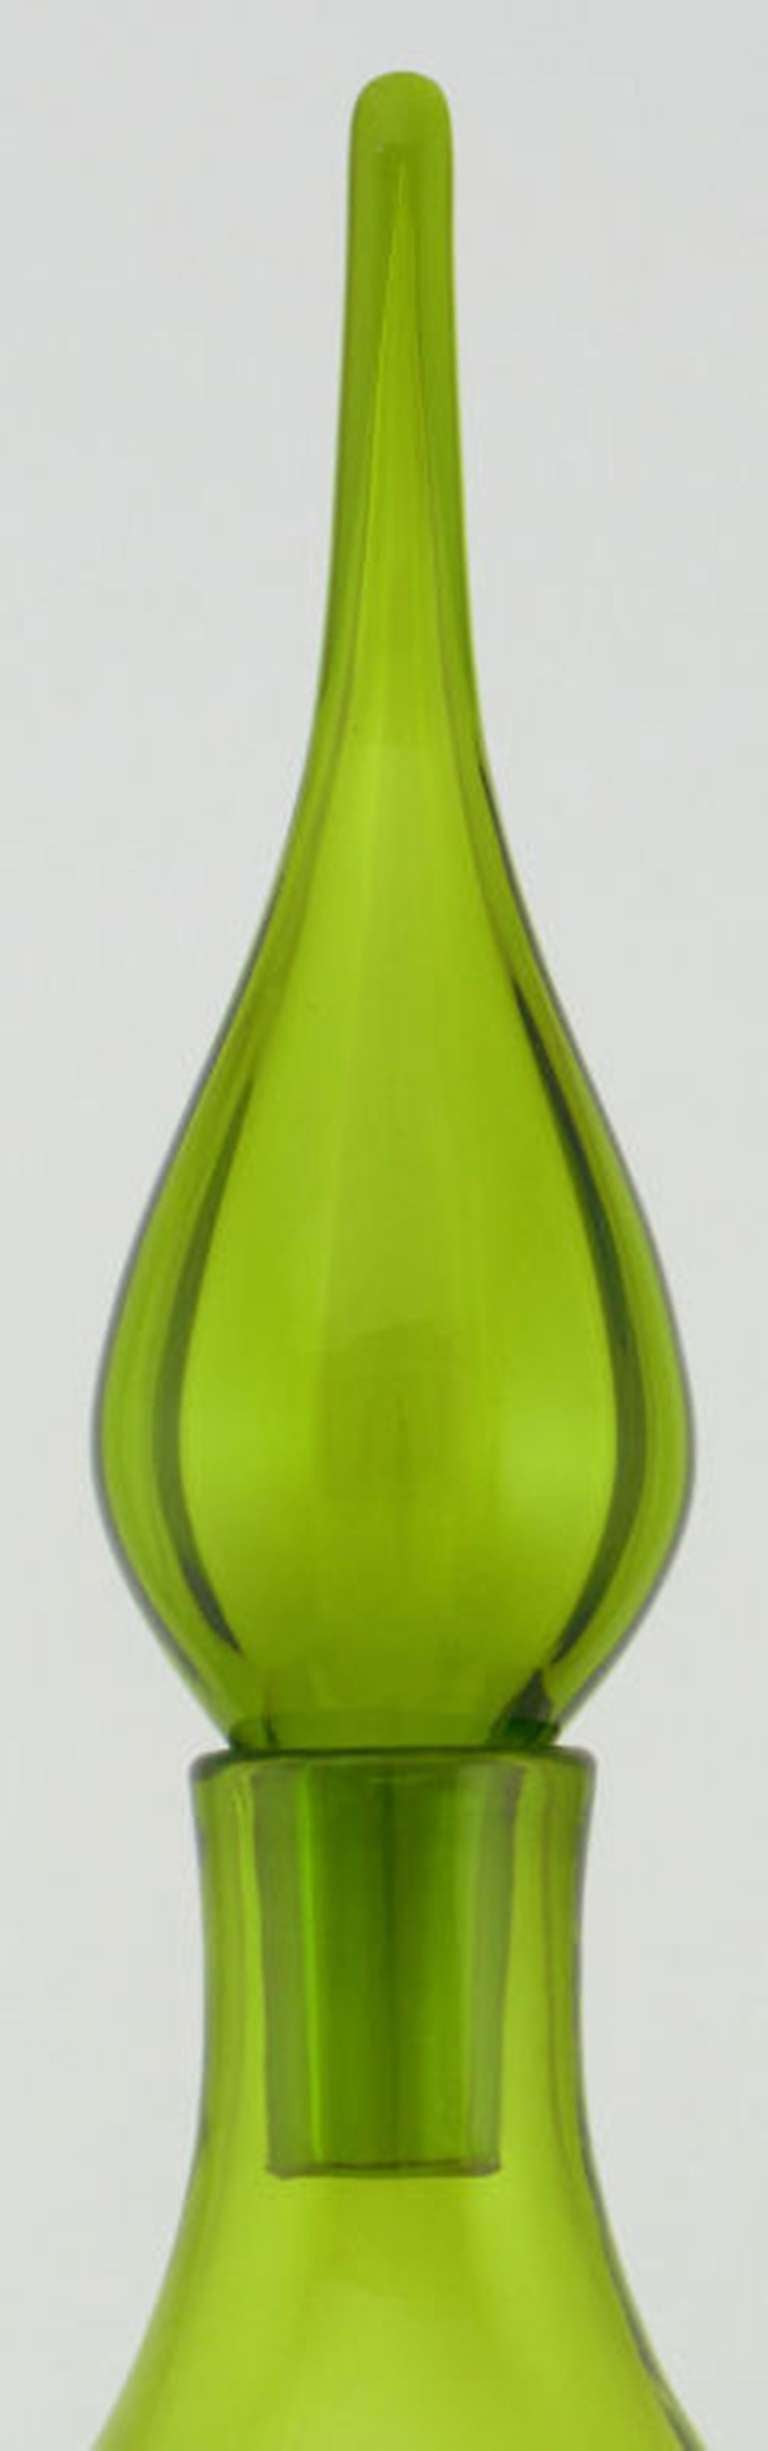 Striking 41 Quot Green Blenko Glass Decanter With Stopper At